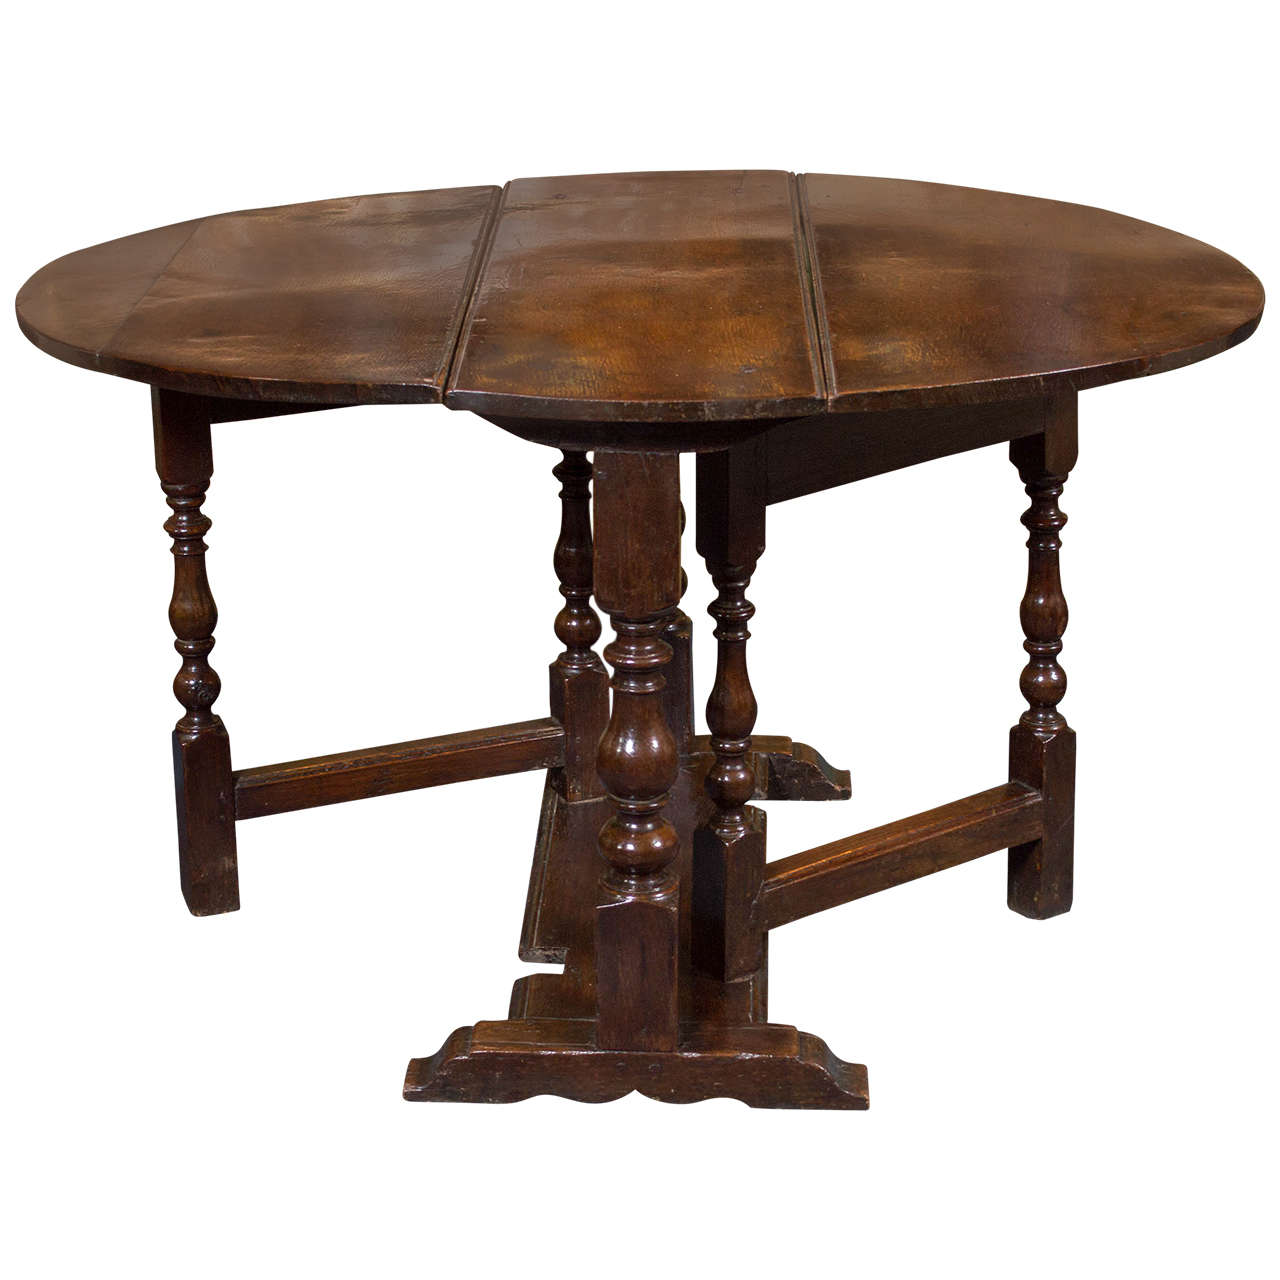 gateleg table with chairs travel shower chair diminutive english oak circa 1750 garden